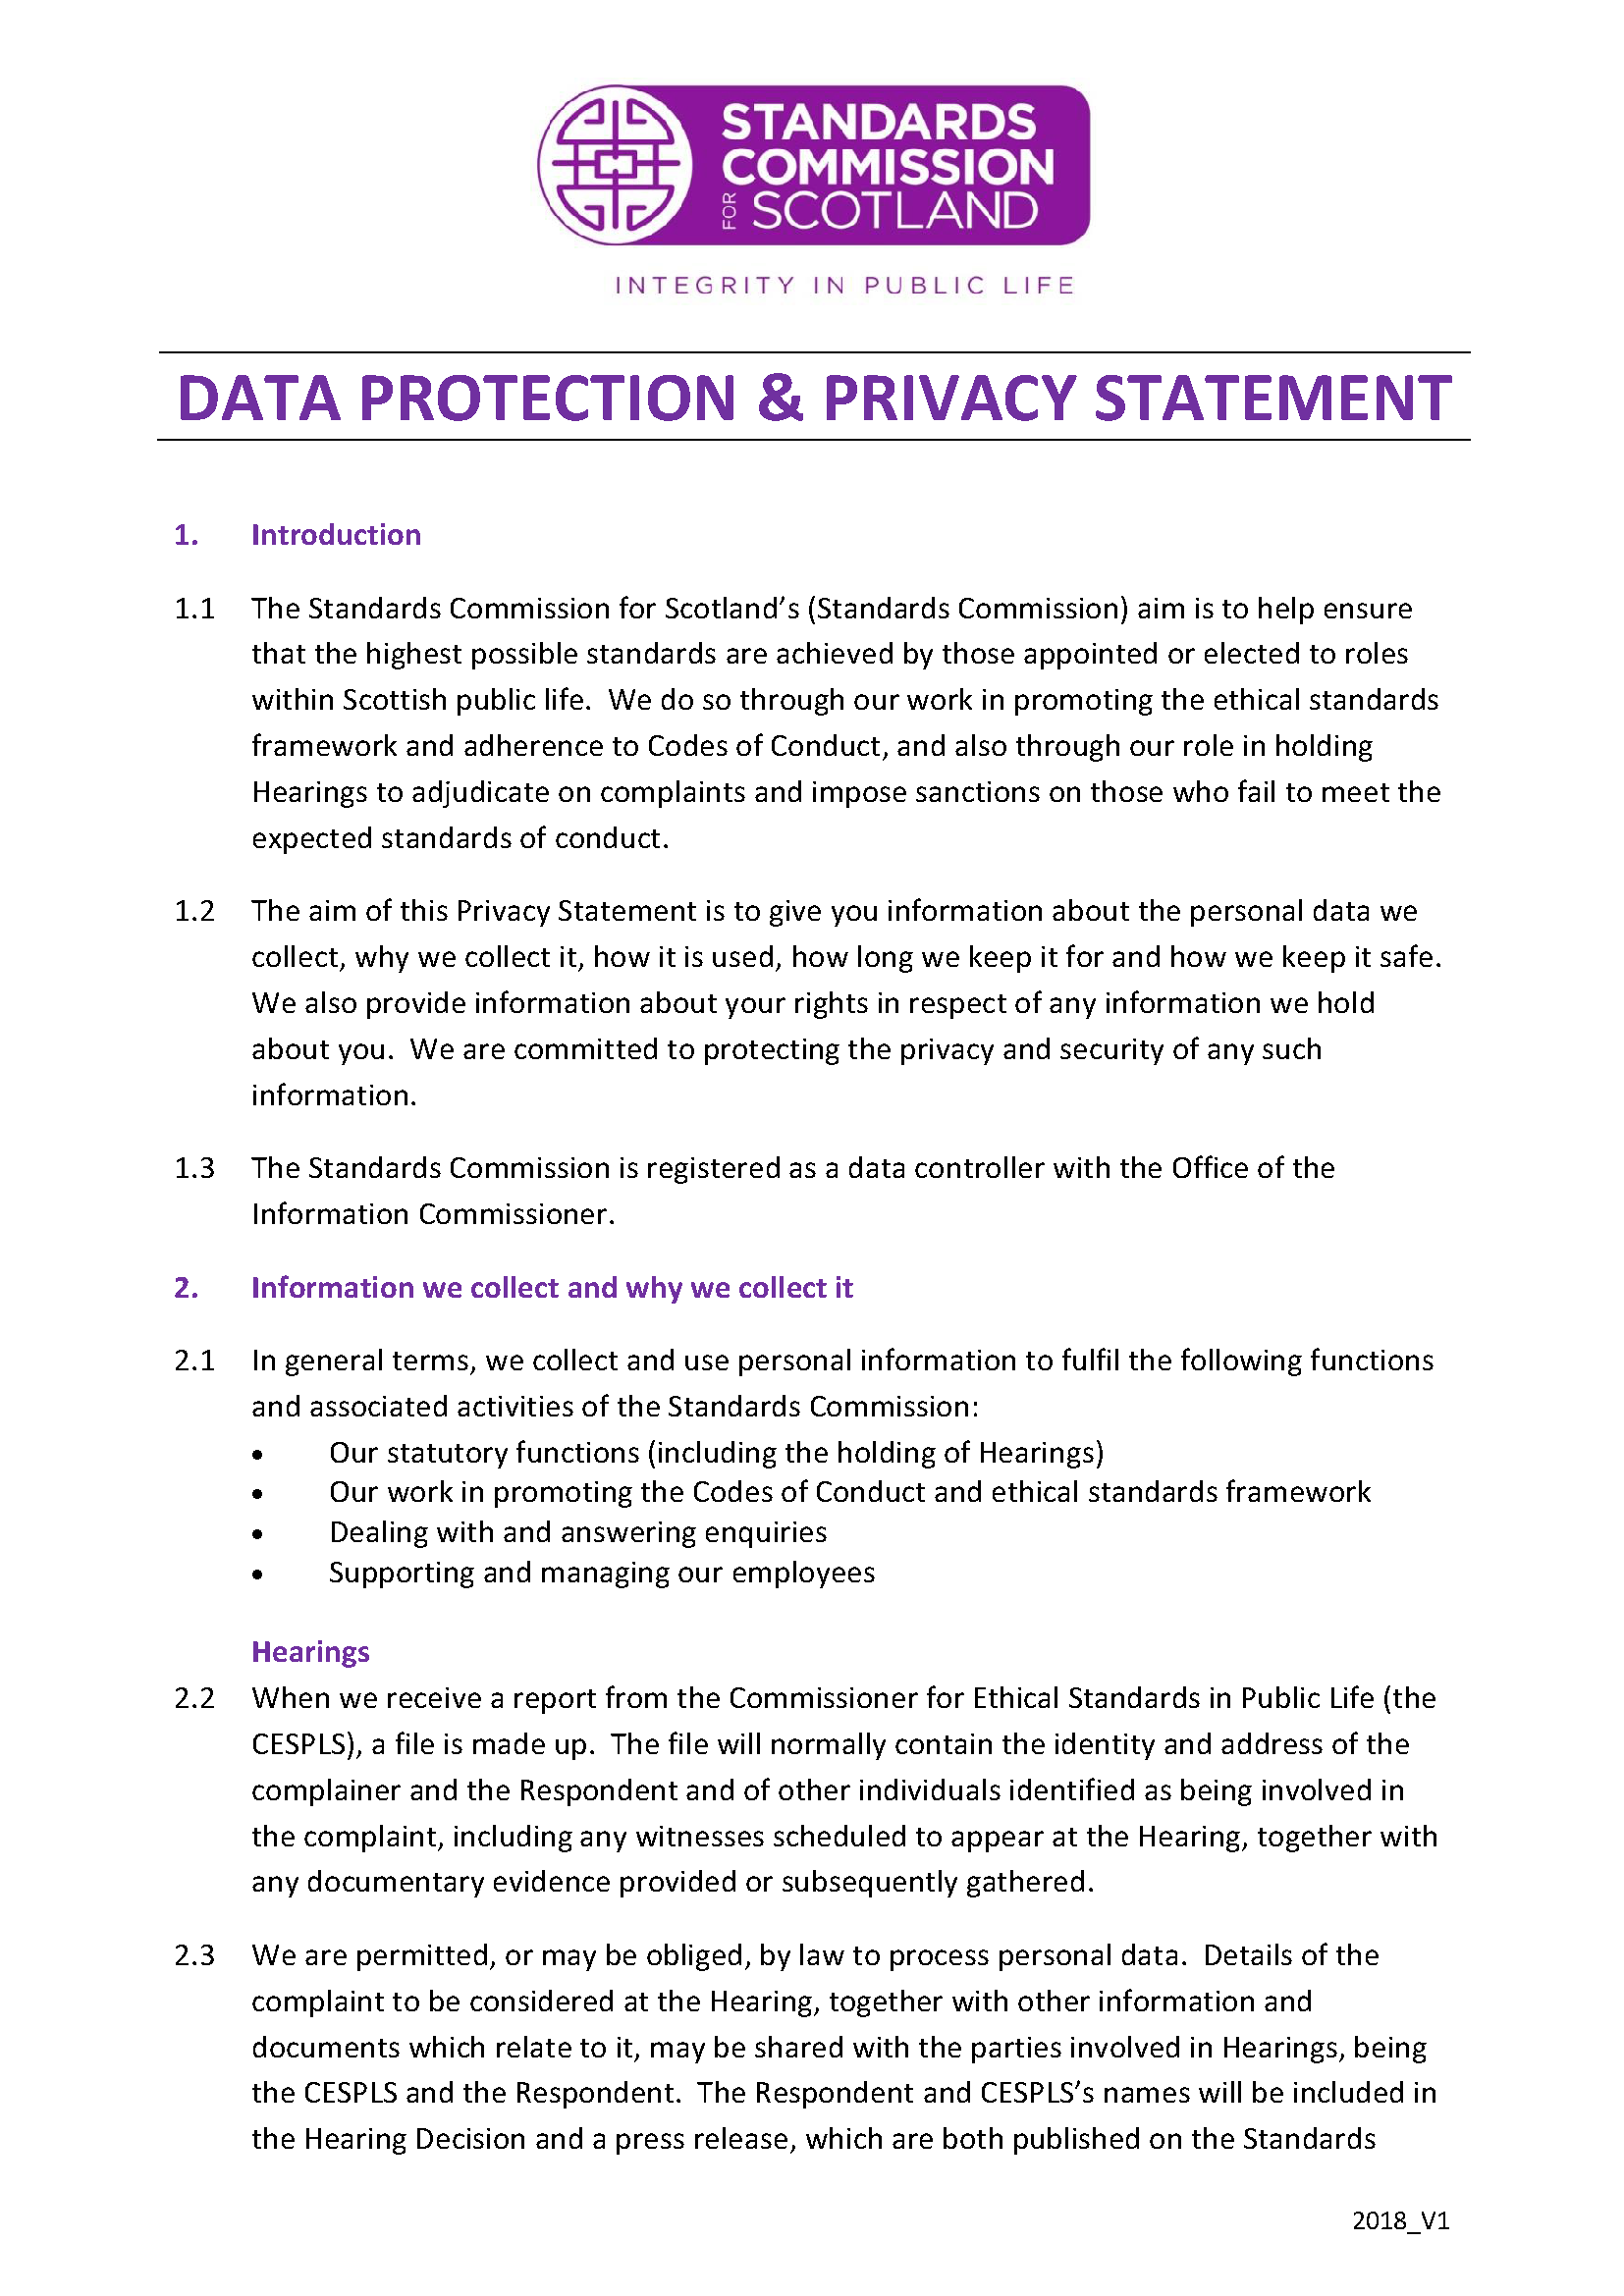 Data Protection Privacy Statement